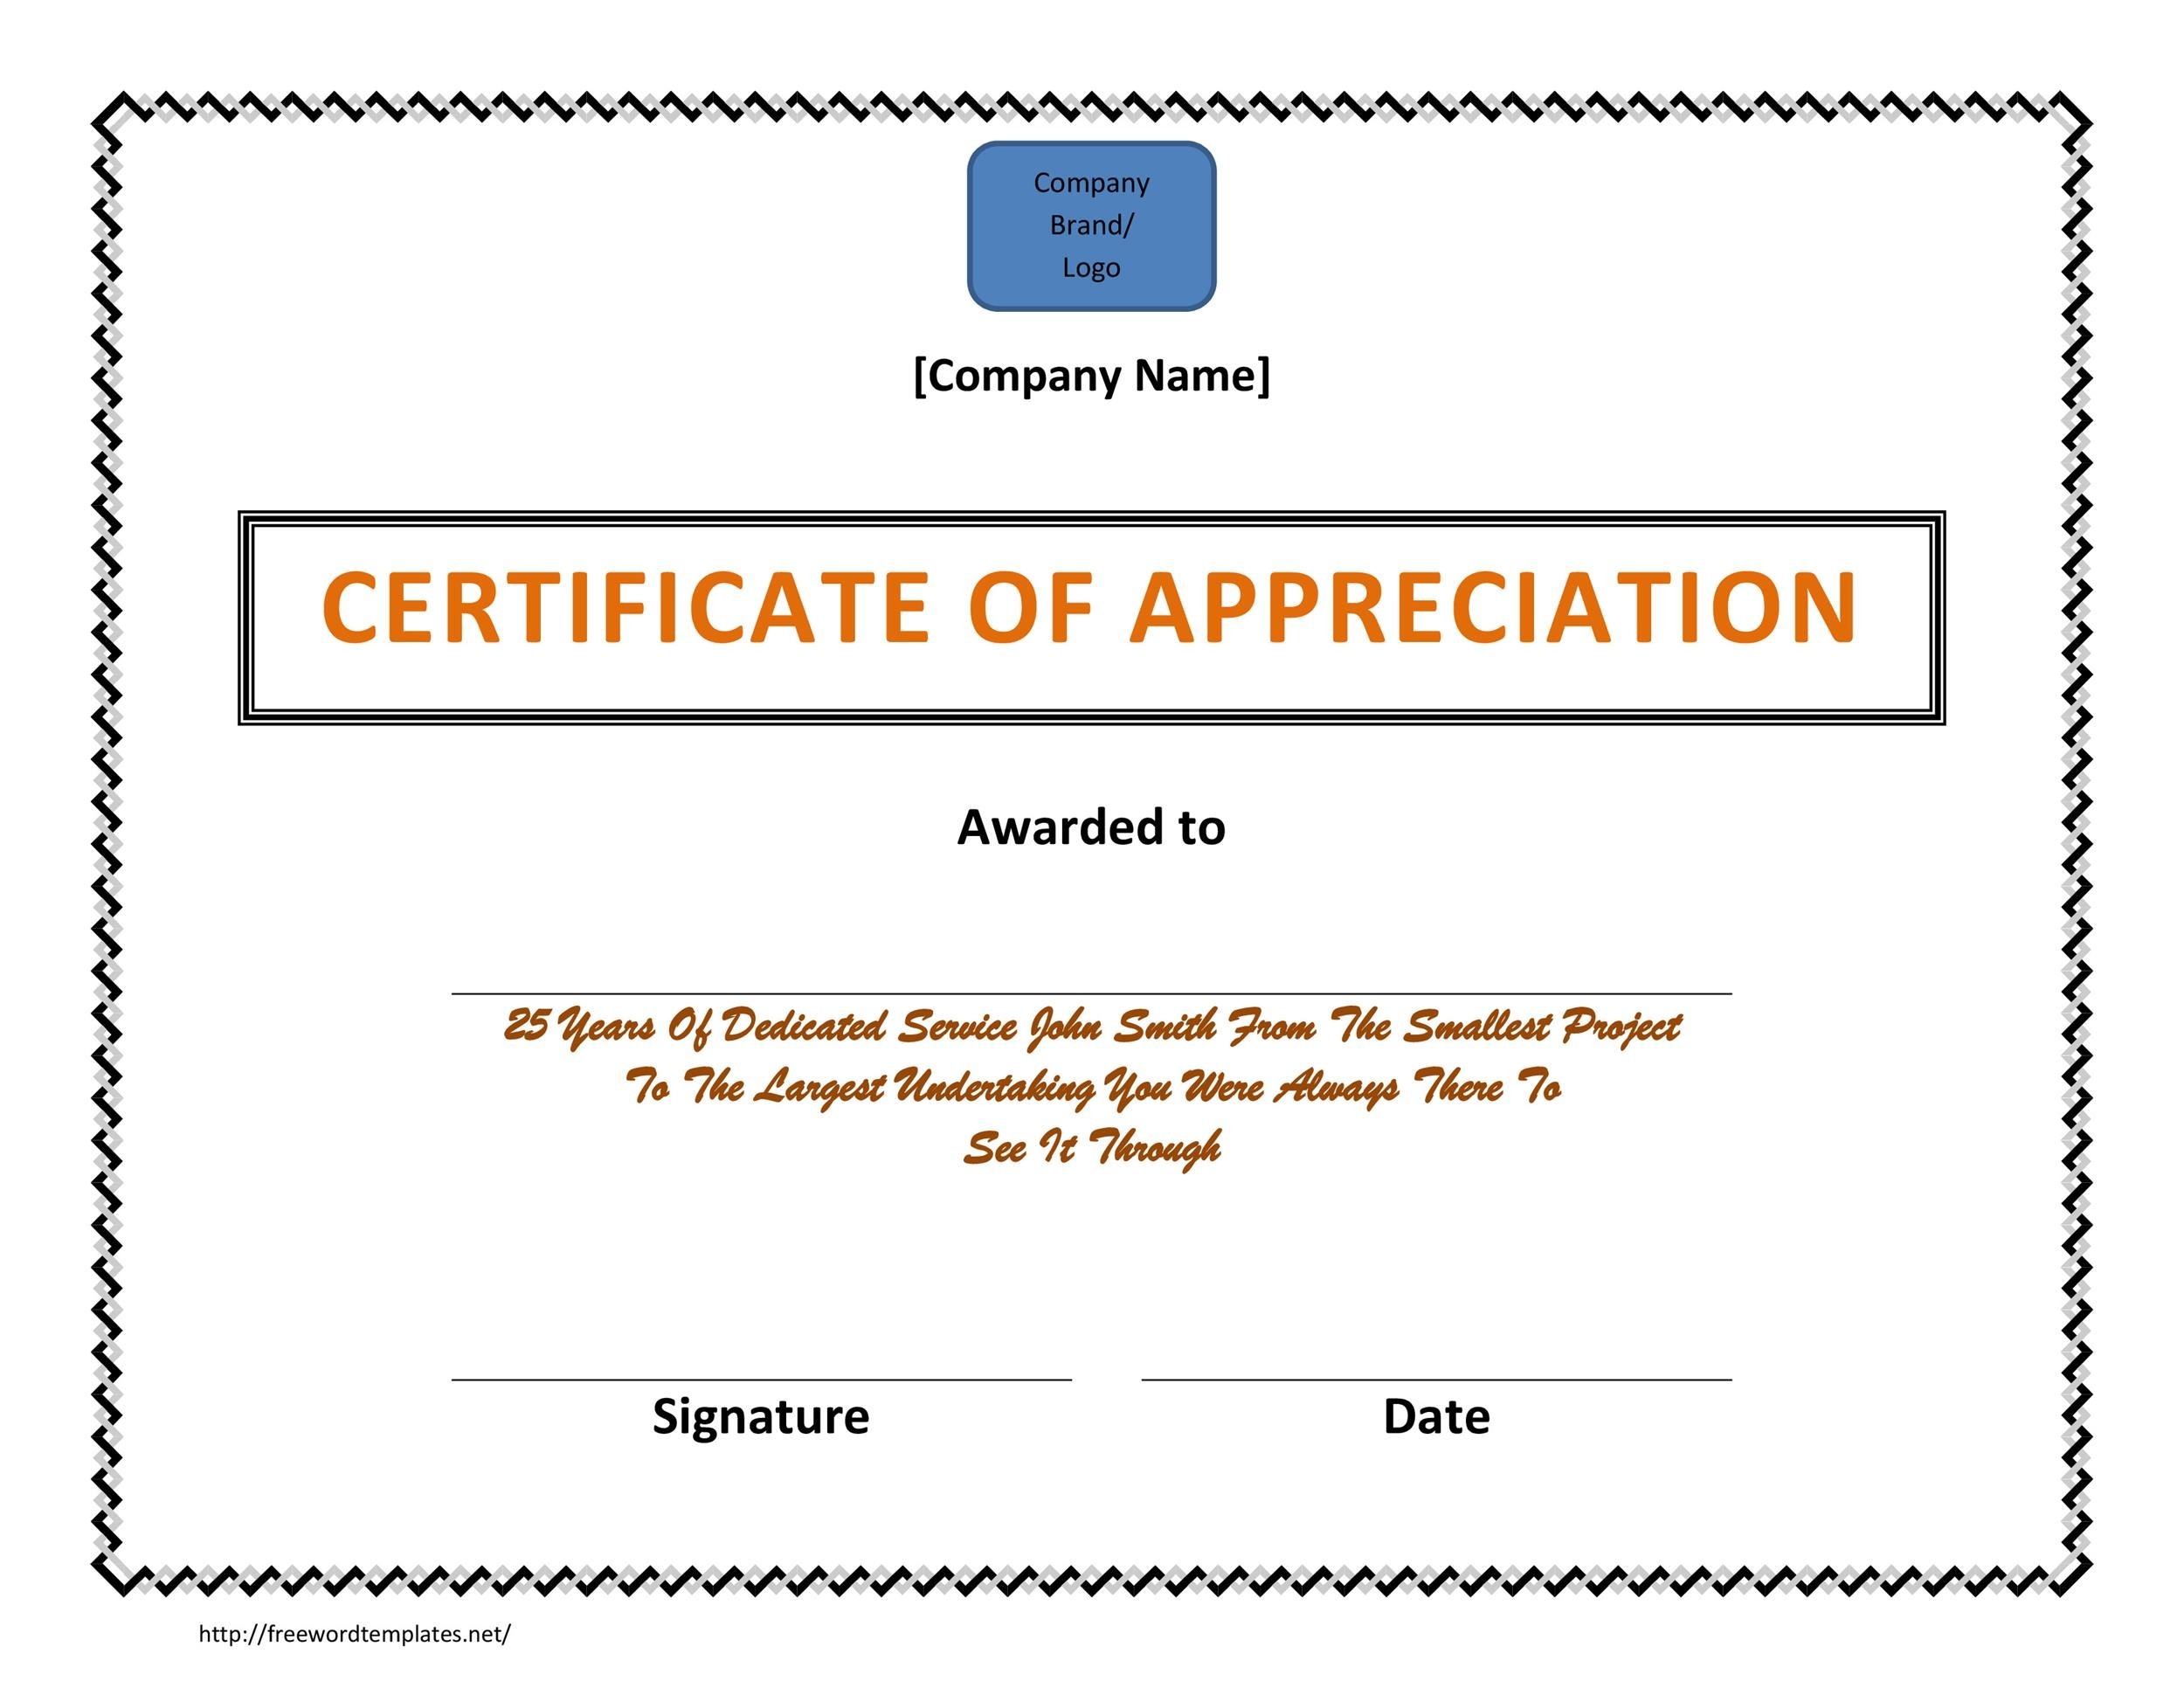 Printable Certificate Of Appreciation 05  Certificate Of Appreciation Words